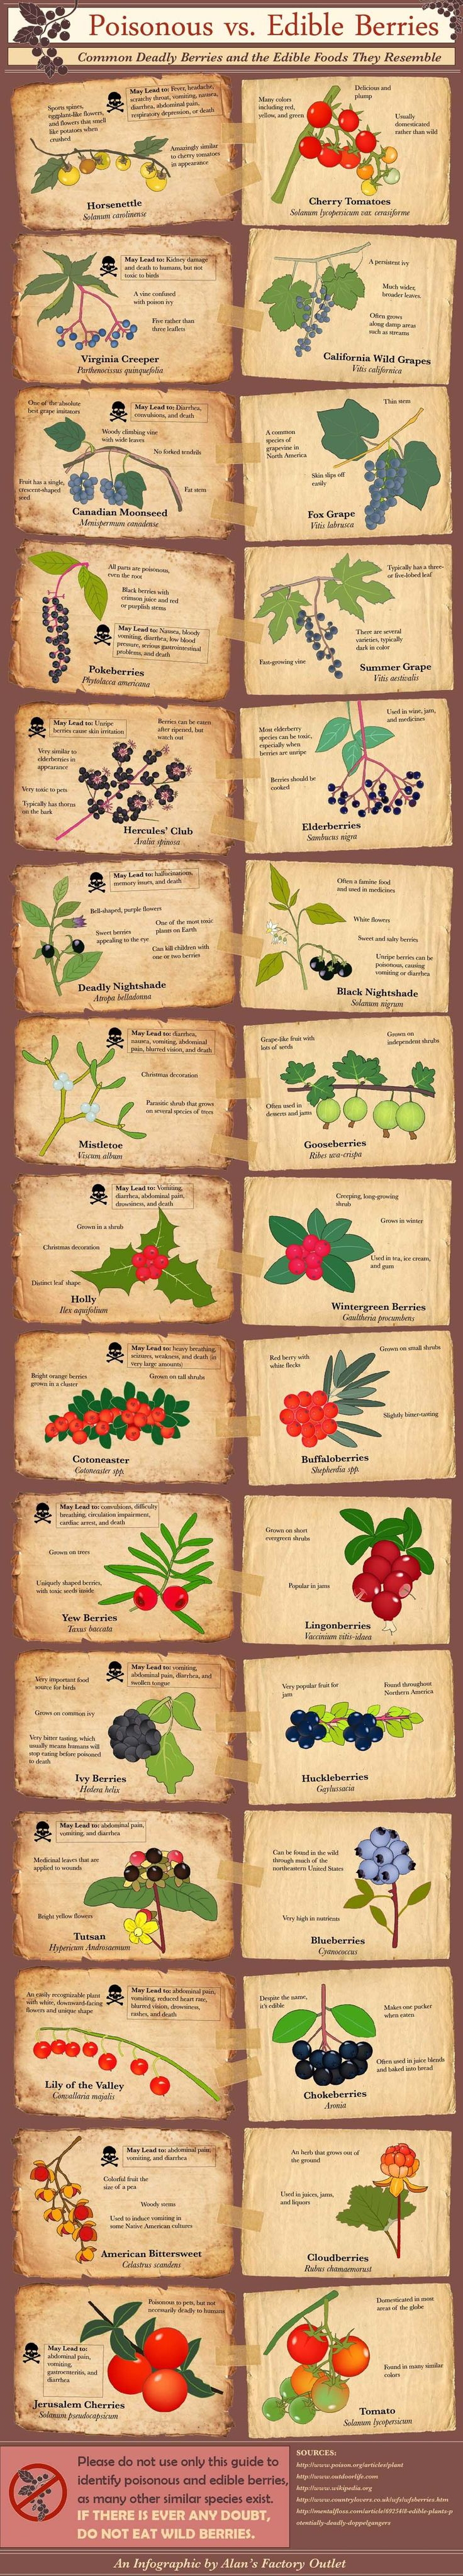 Poisonous vs Edible Berries - Deadly Berries & the Edible Foods They Resemble